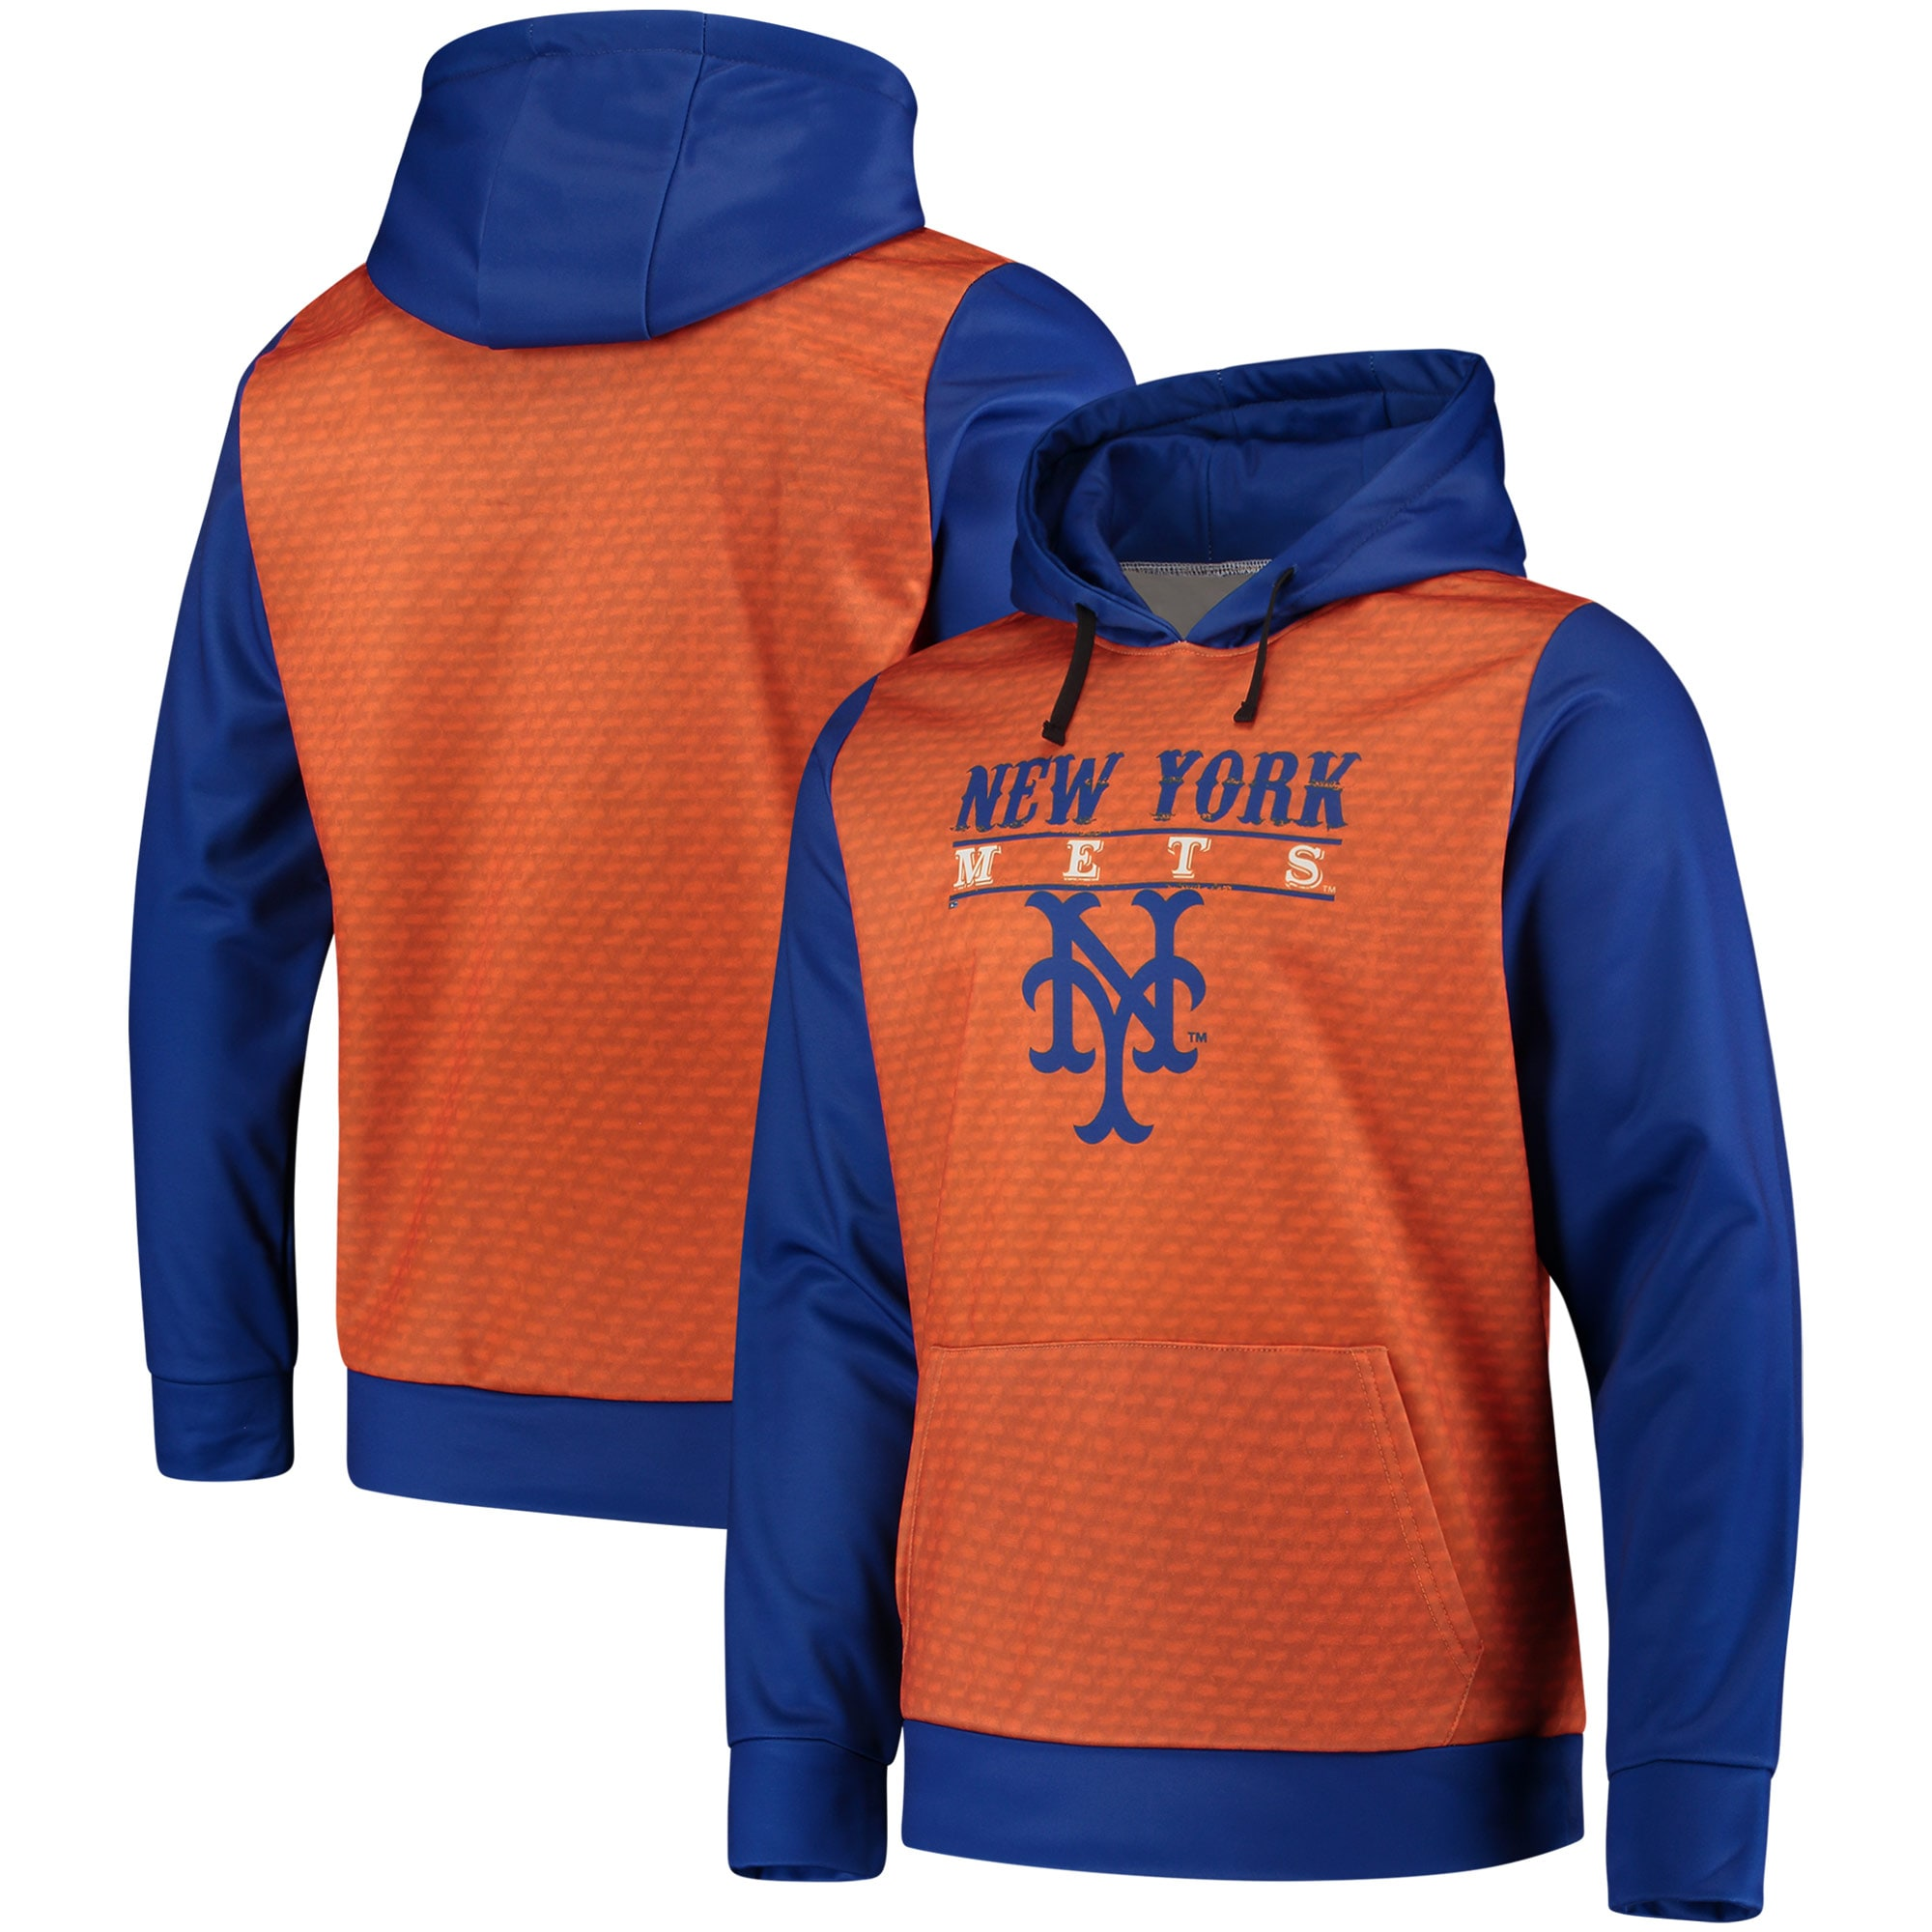 New York Mets Cooperstown Collection Pullover Hoodie - Orange/Royal